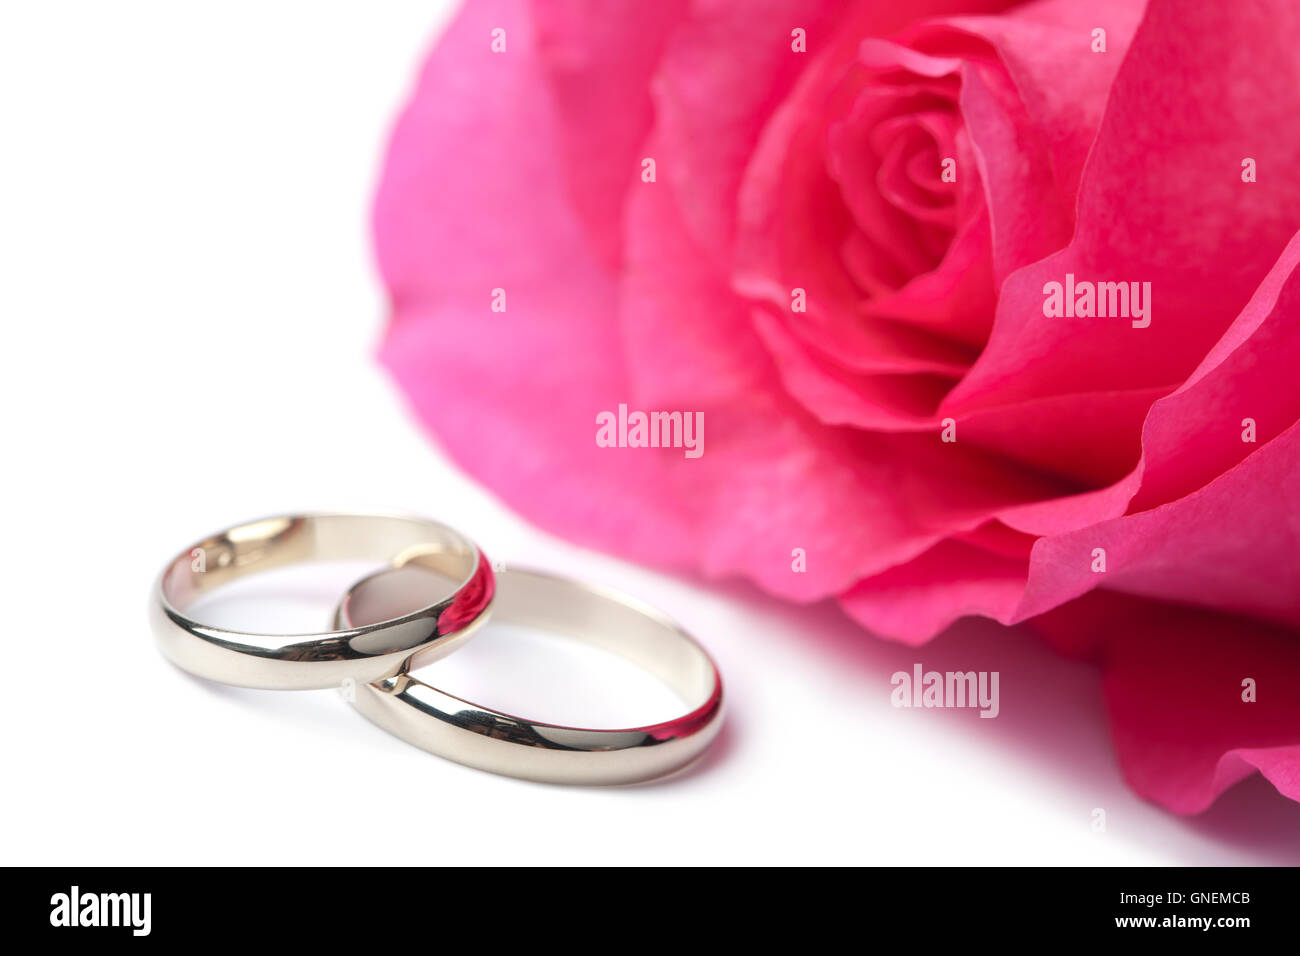 Gold wedding rings and pink rose isolated Stock Photo: 116493339 - Alamy